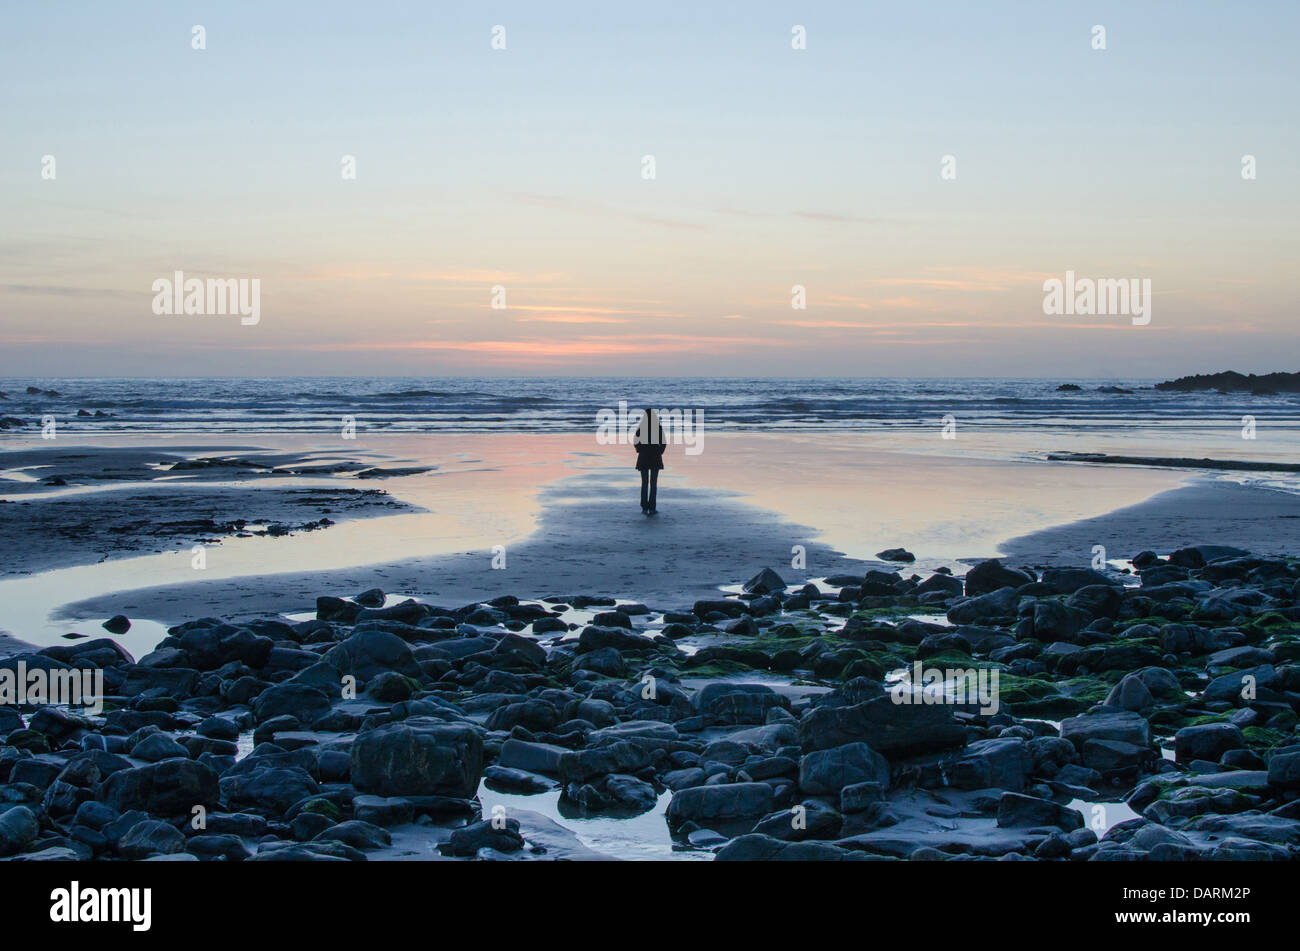 A young woman looking out to sea during sunset at Crackington Haven, Cornwall, UK - Stock Image